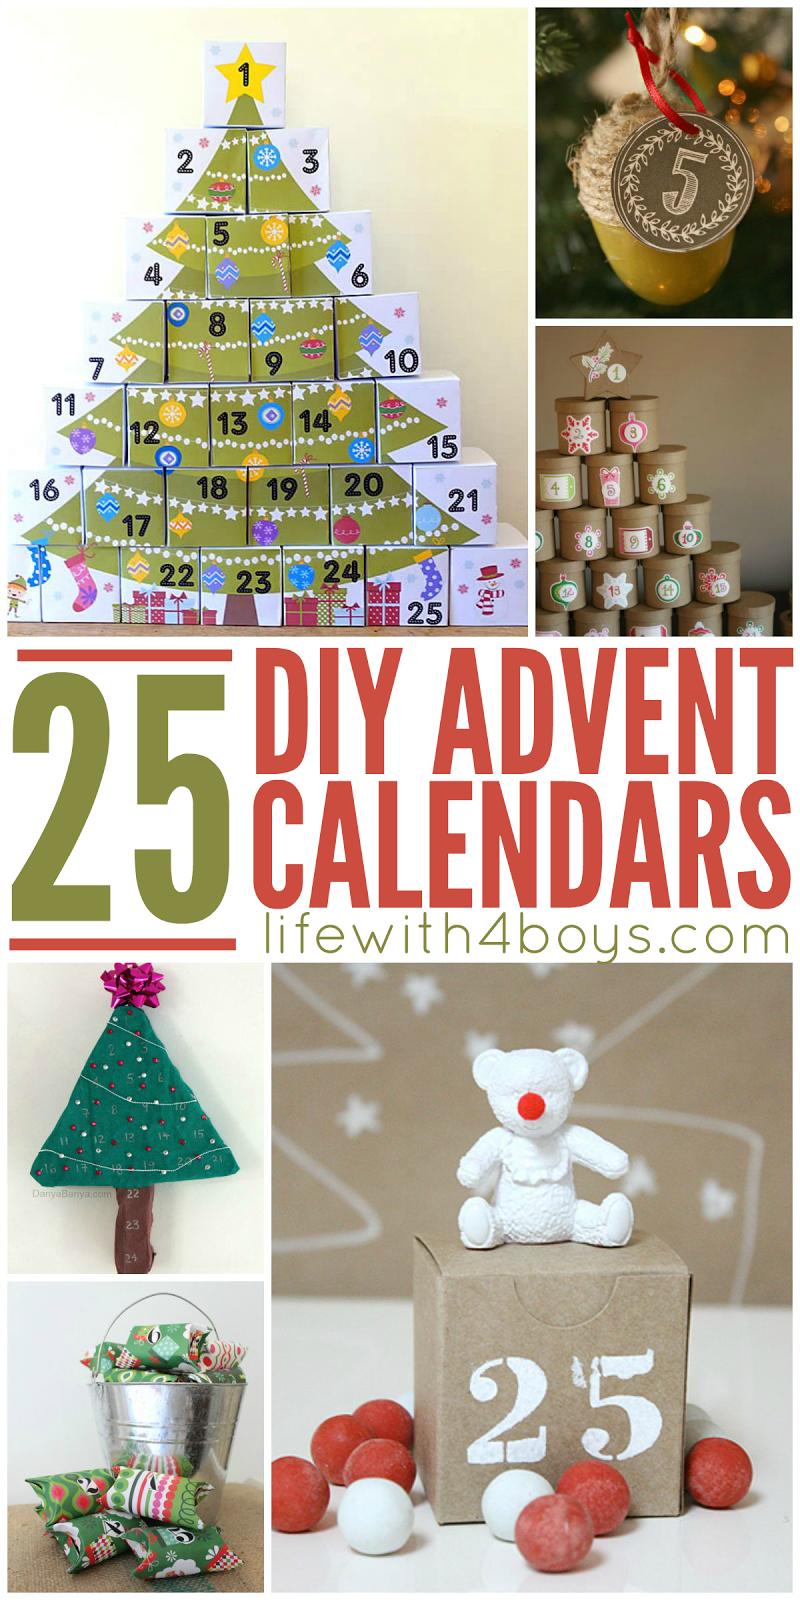 life with 4 boys 25 diy advent calendars to help you. Black Bedroom Furniture Sets. Home Design Ideas